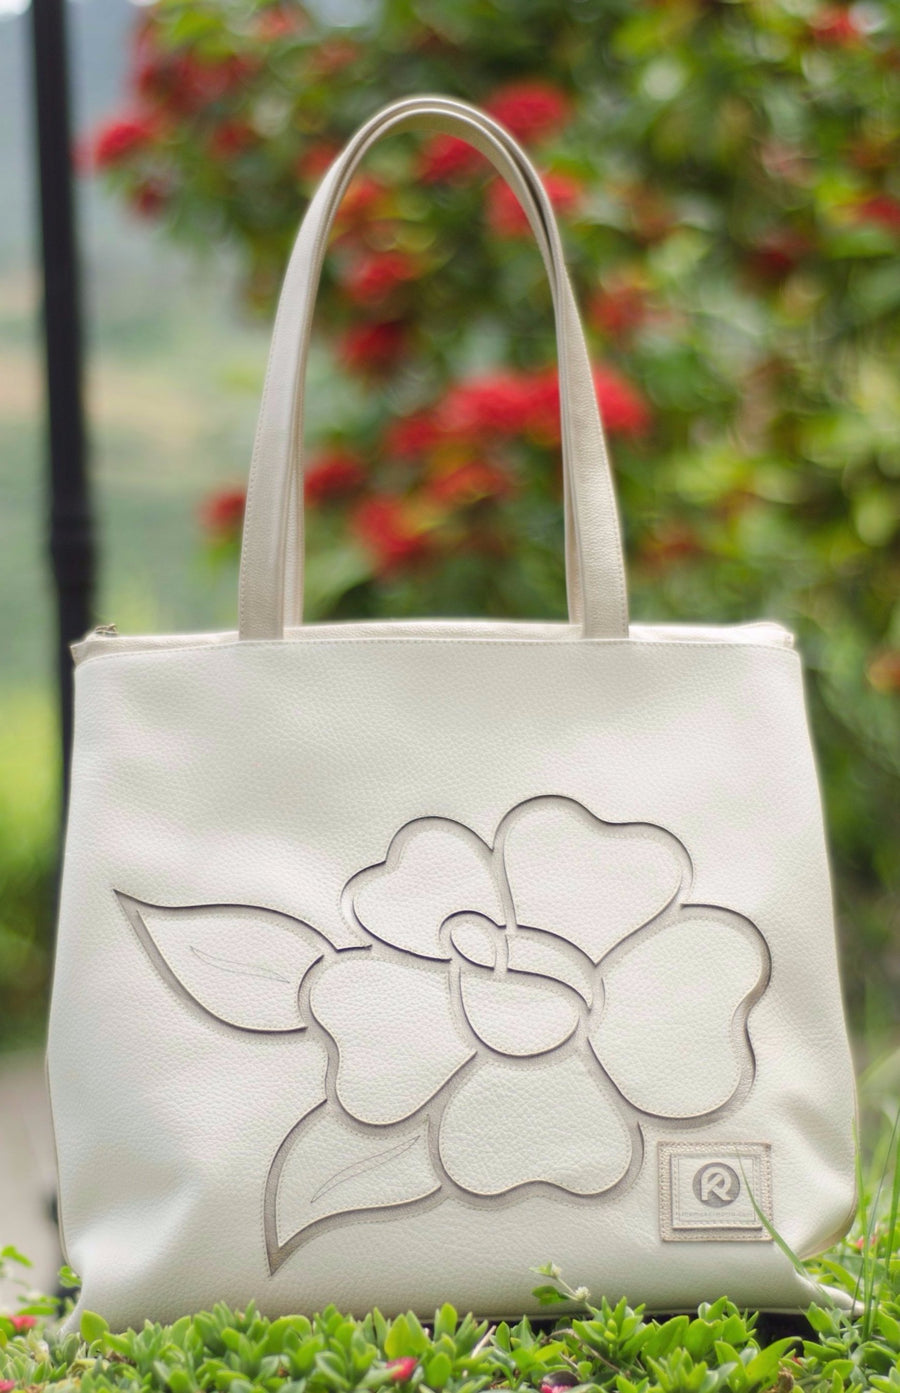 Flor Flair, Ivory & Gold Tote, 100% Leather - Handbag Charms Leather Bag - Handbag TheMakerWorld TheMakerWorld